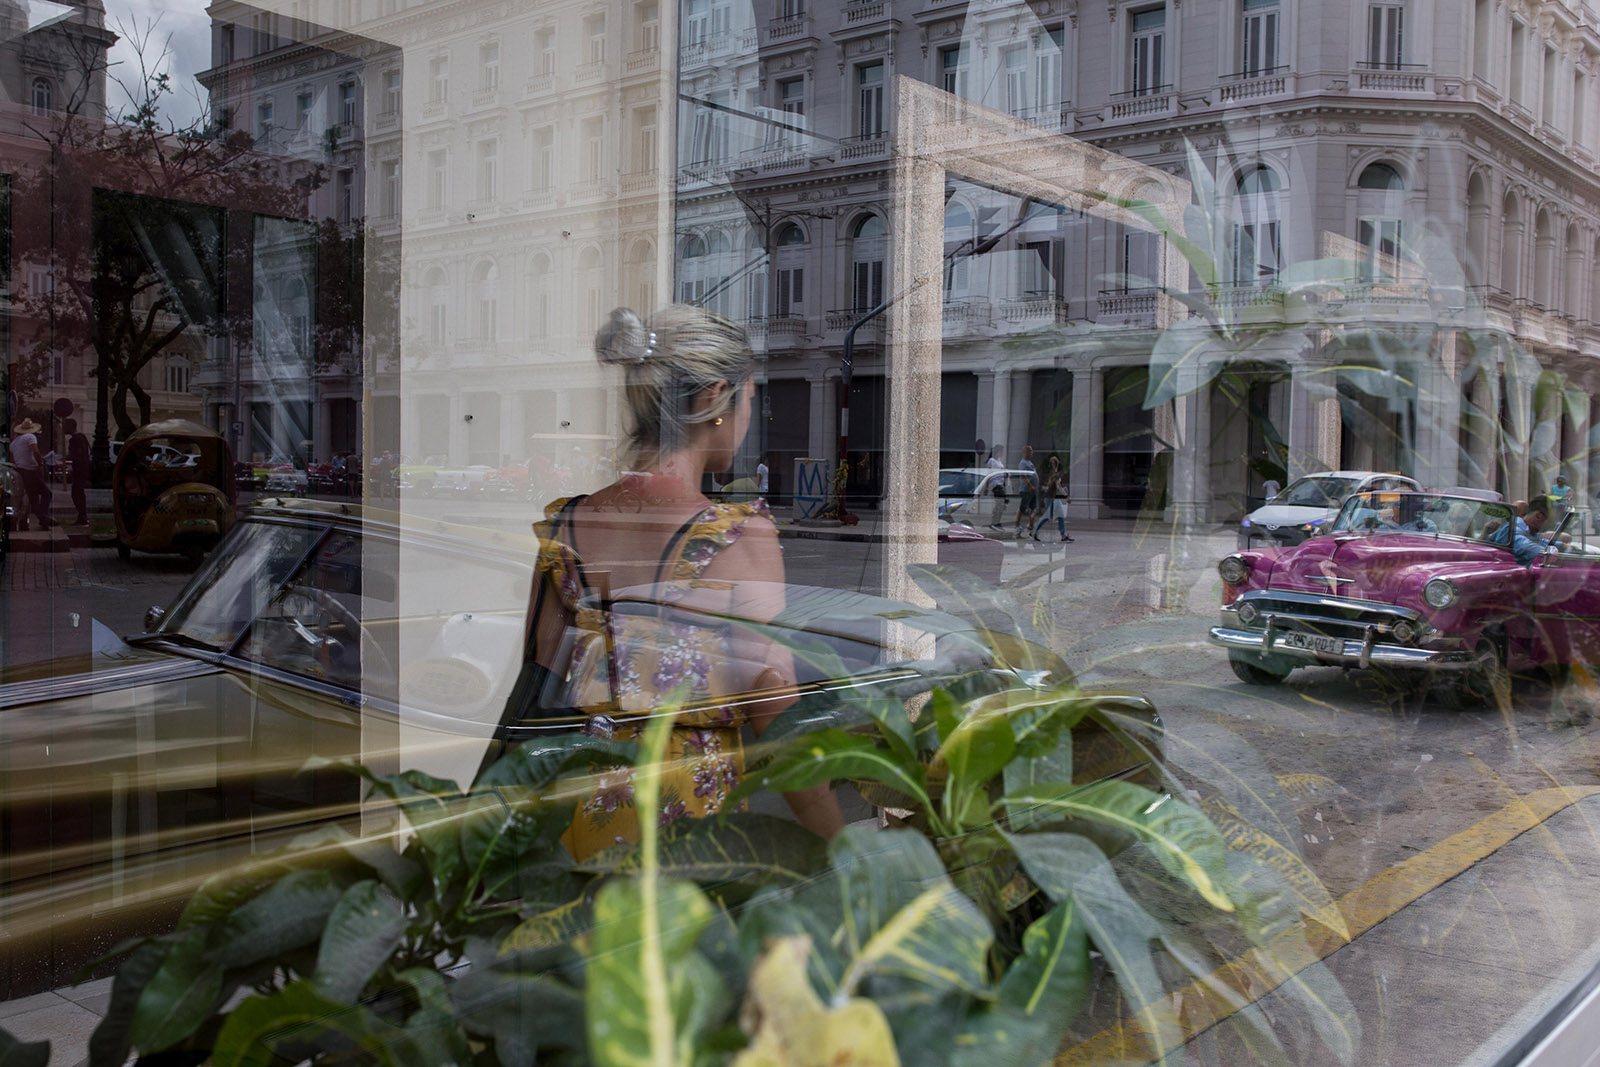 Reflections of the streets in Havana